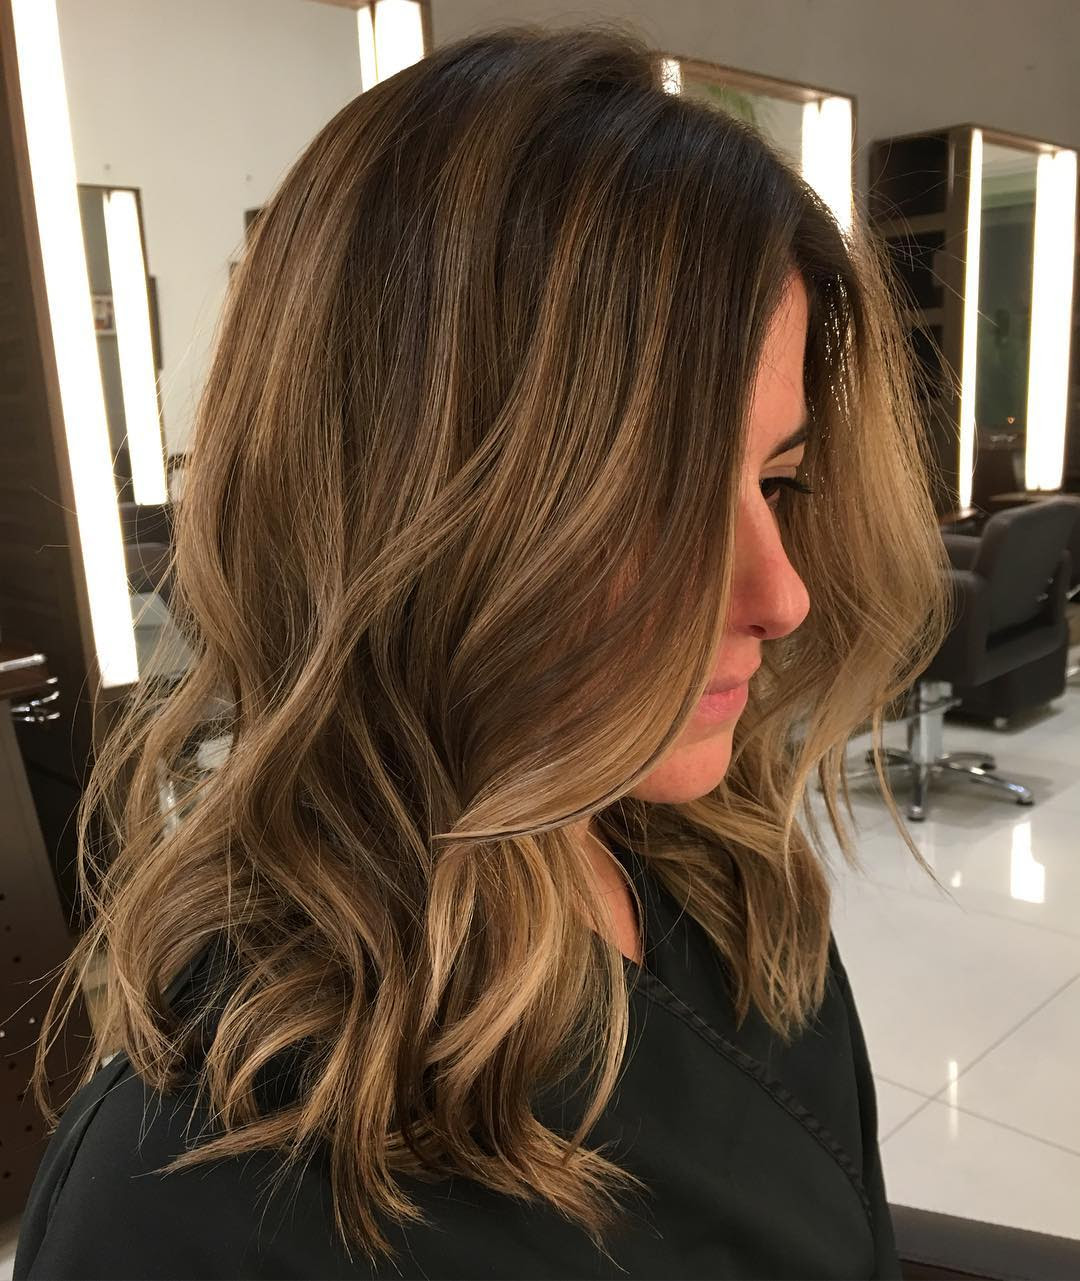 45 Light Brown Hair Color Ideas: Light Brown Hair with Highlights and Lowlights